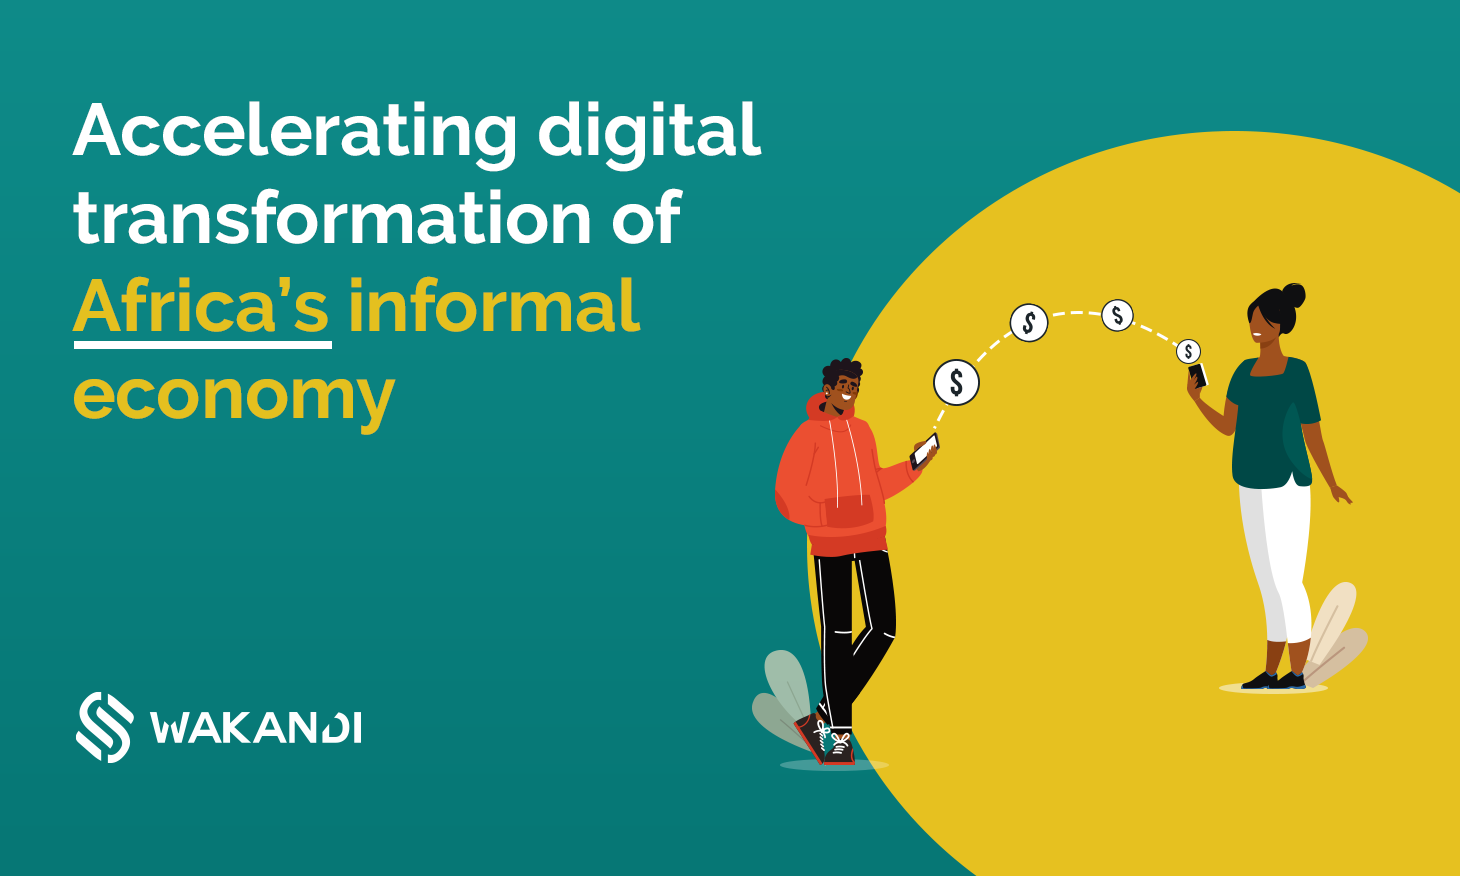 Digital transformation of the Informal Economy in Africa